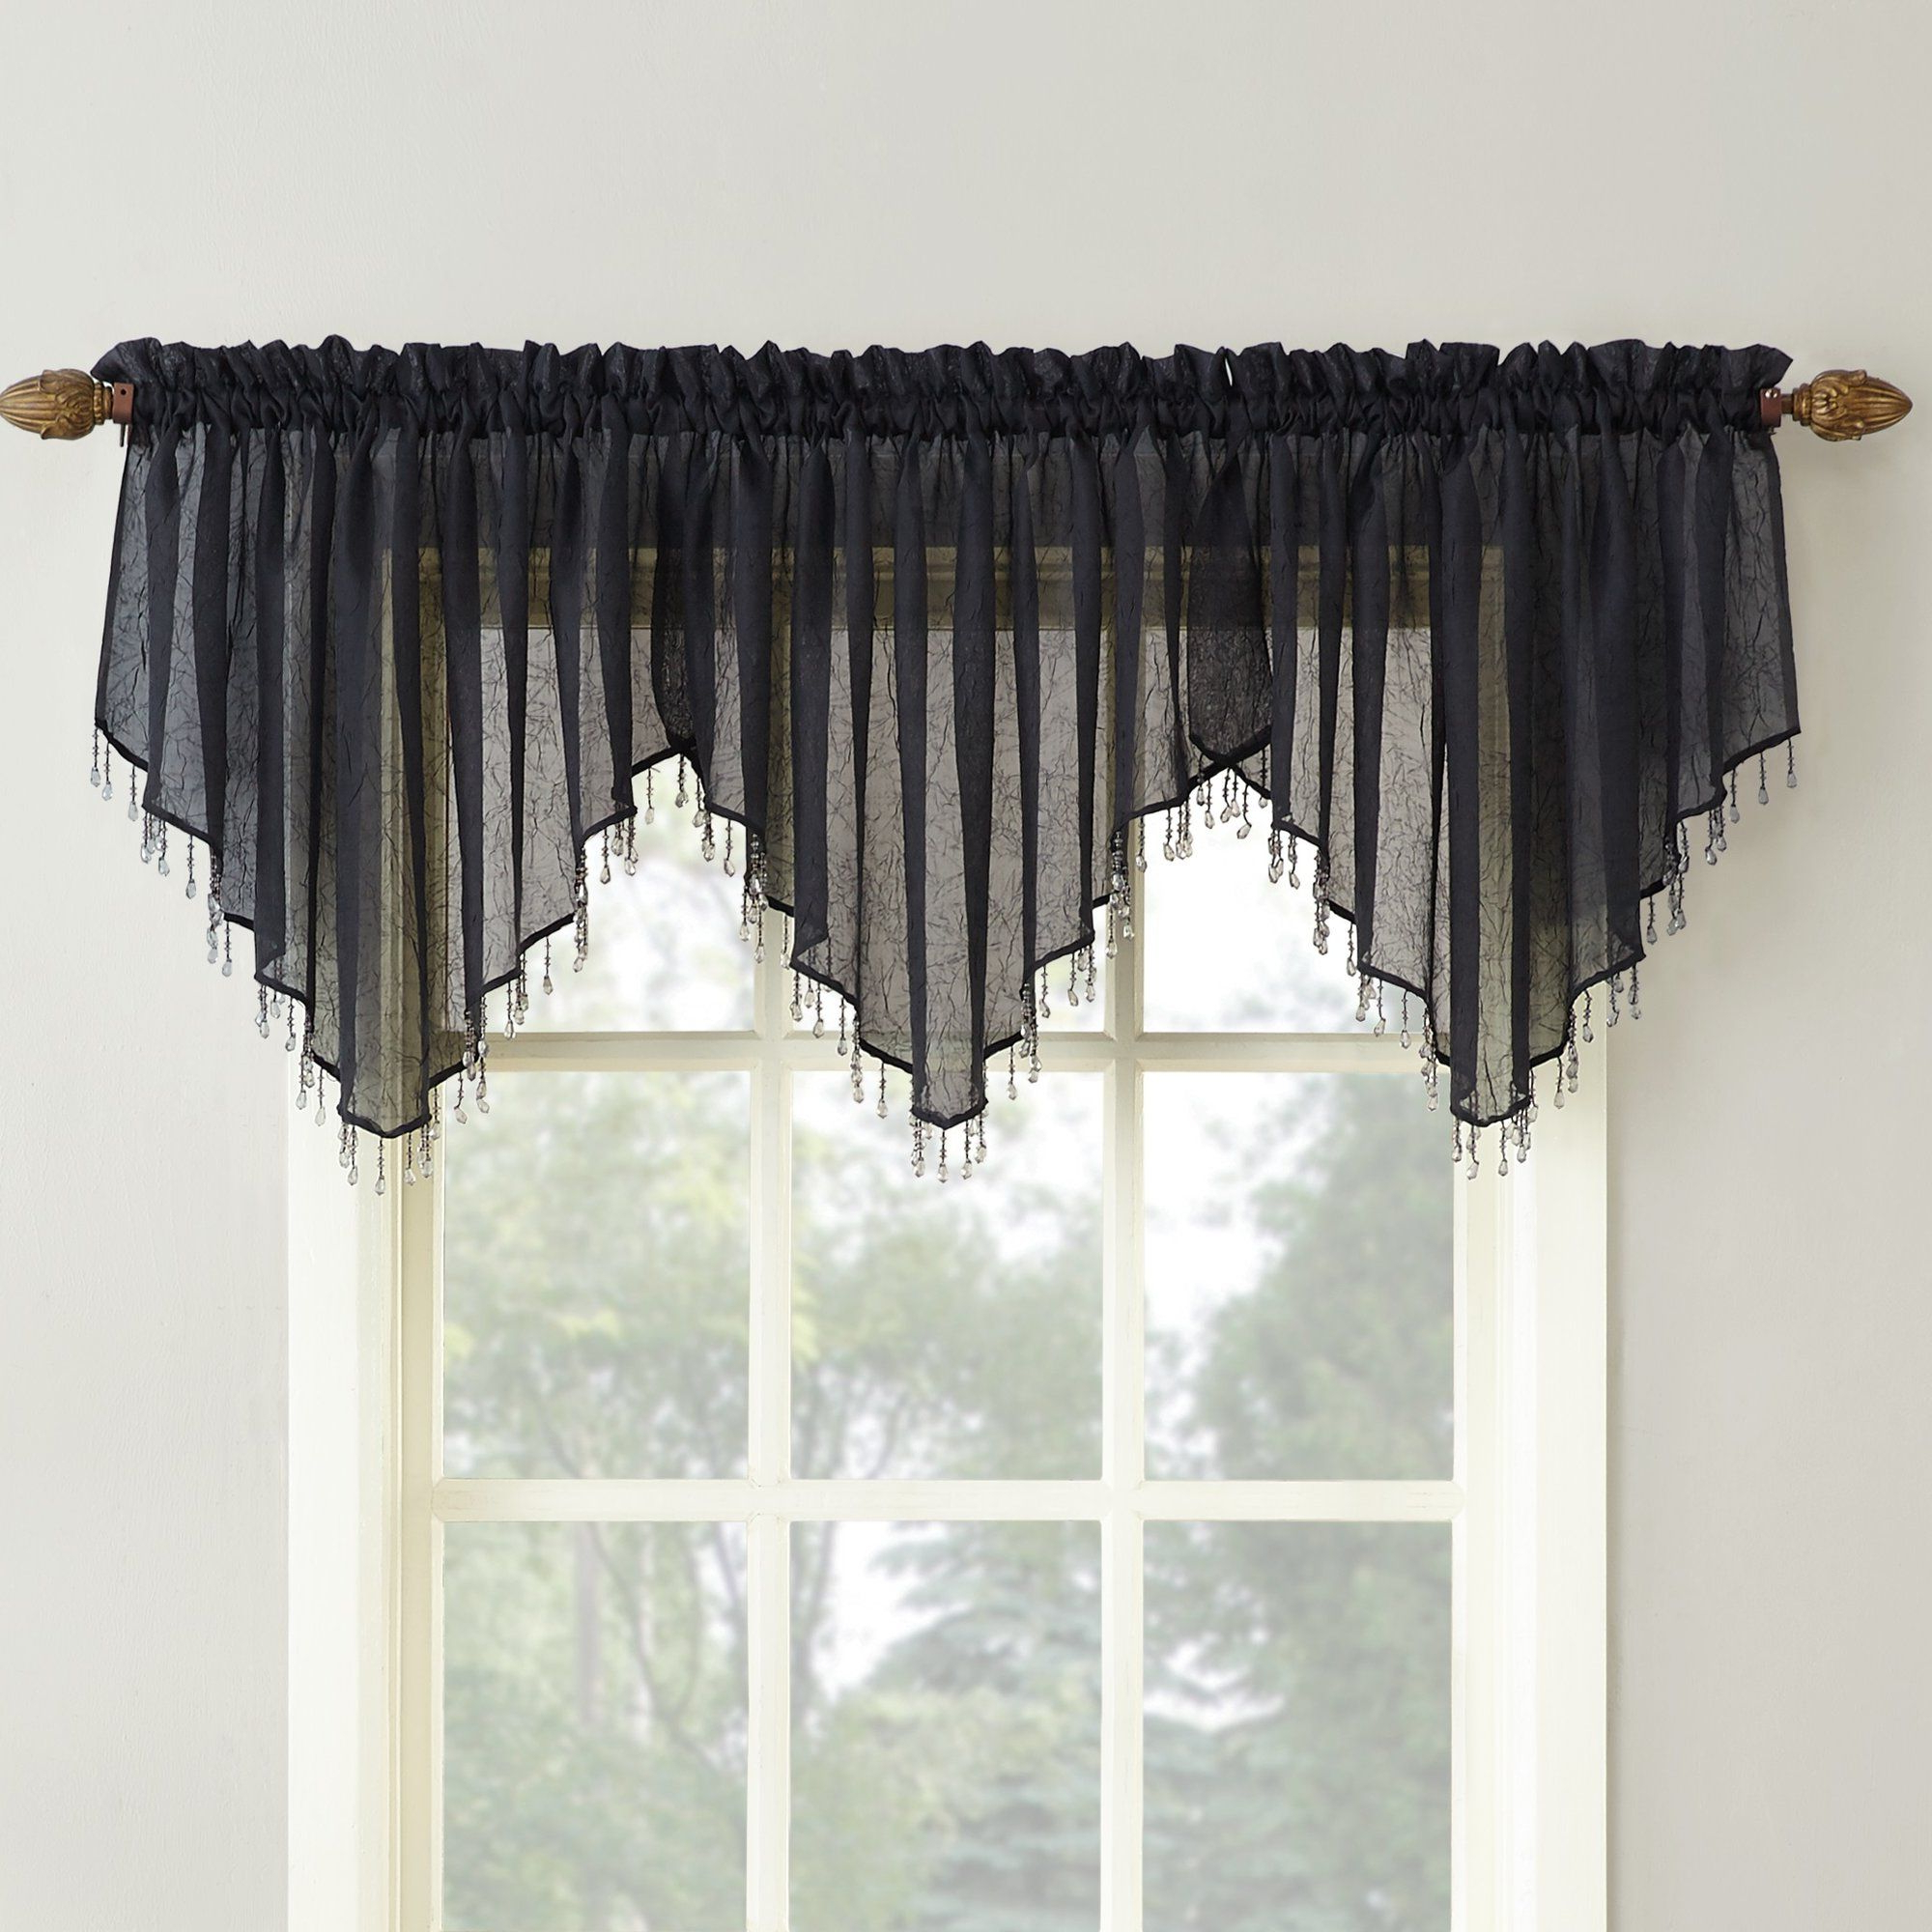 "Widely Used Sheffield Sheer Voile 51"" Curtain Valance (View 20 of 20)"